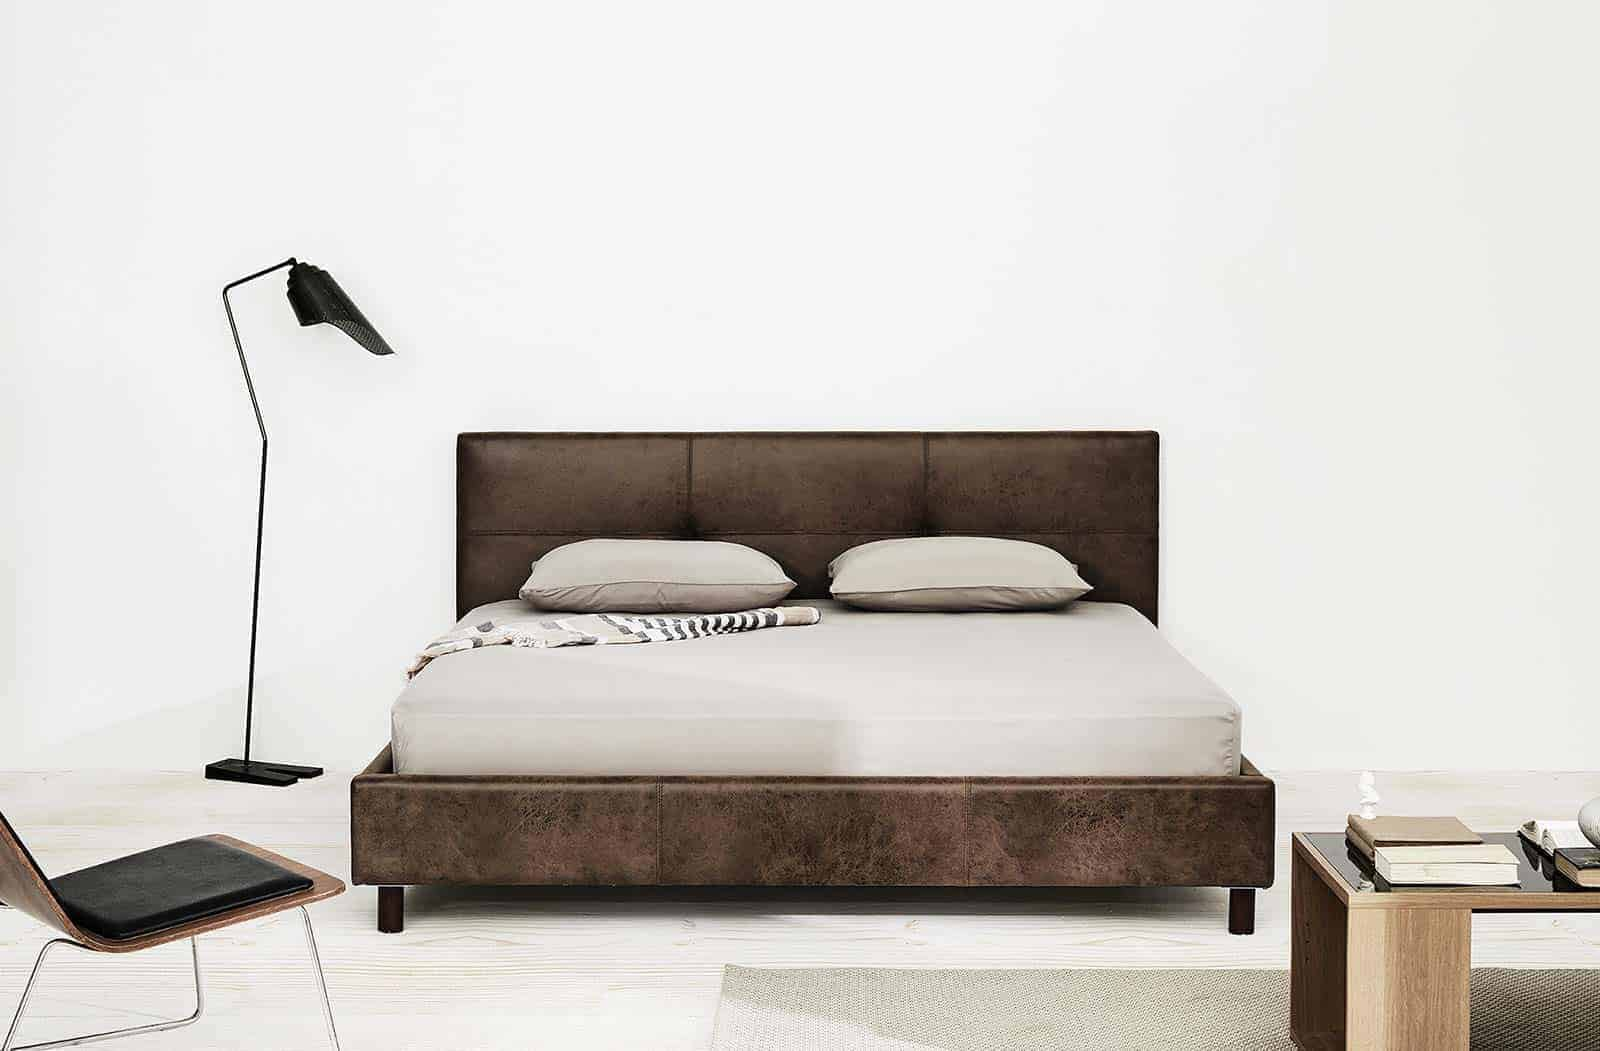 Lotus Bed frame : BedSense-01  - PU Leather : Leg – Wood 13